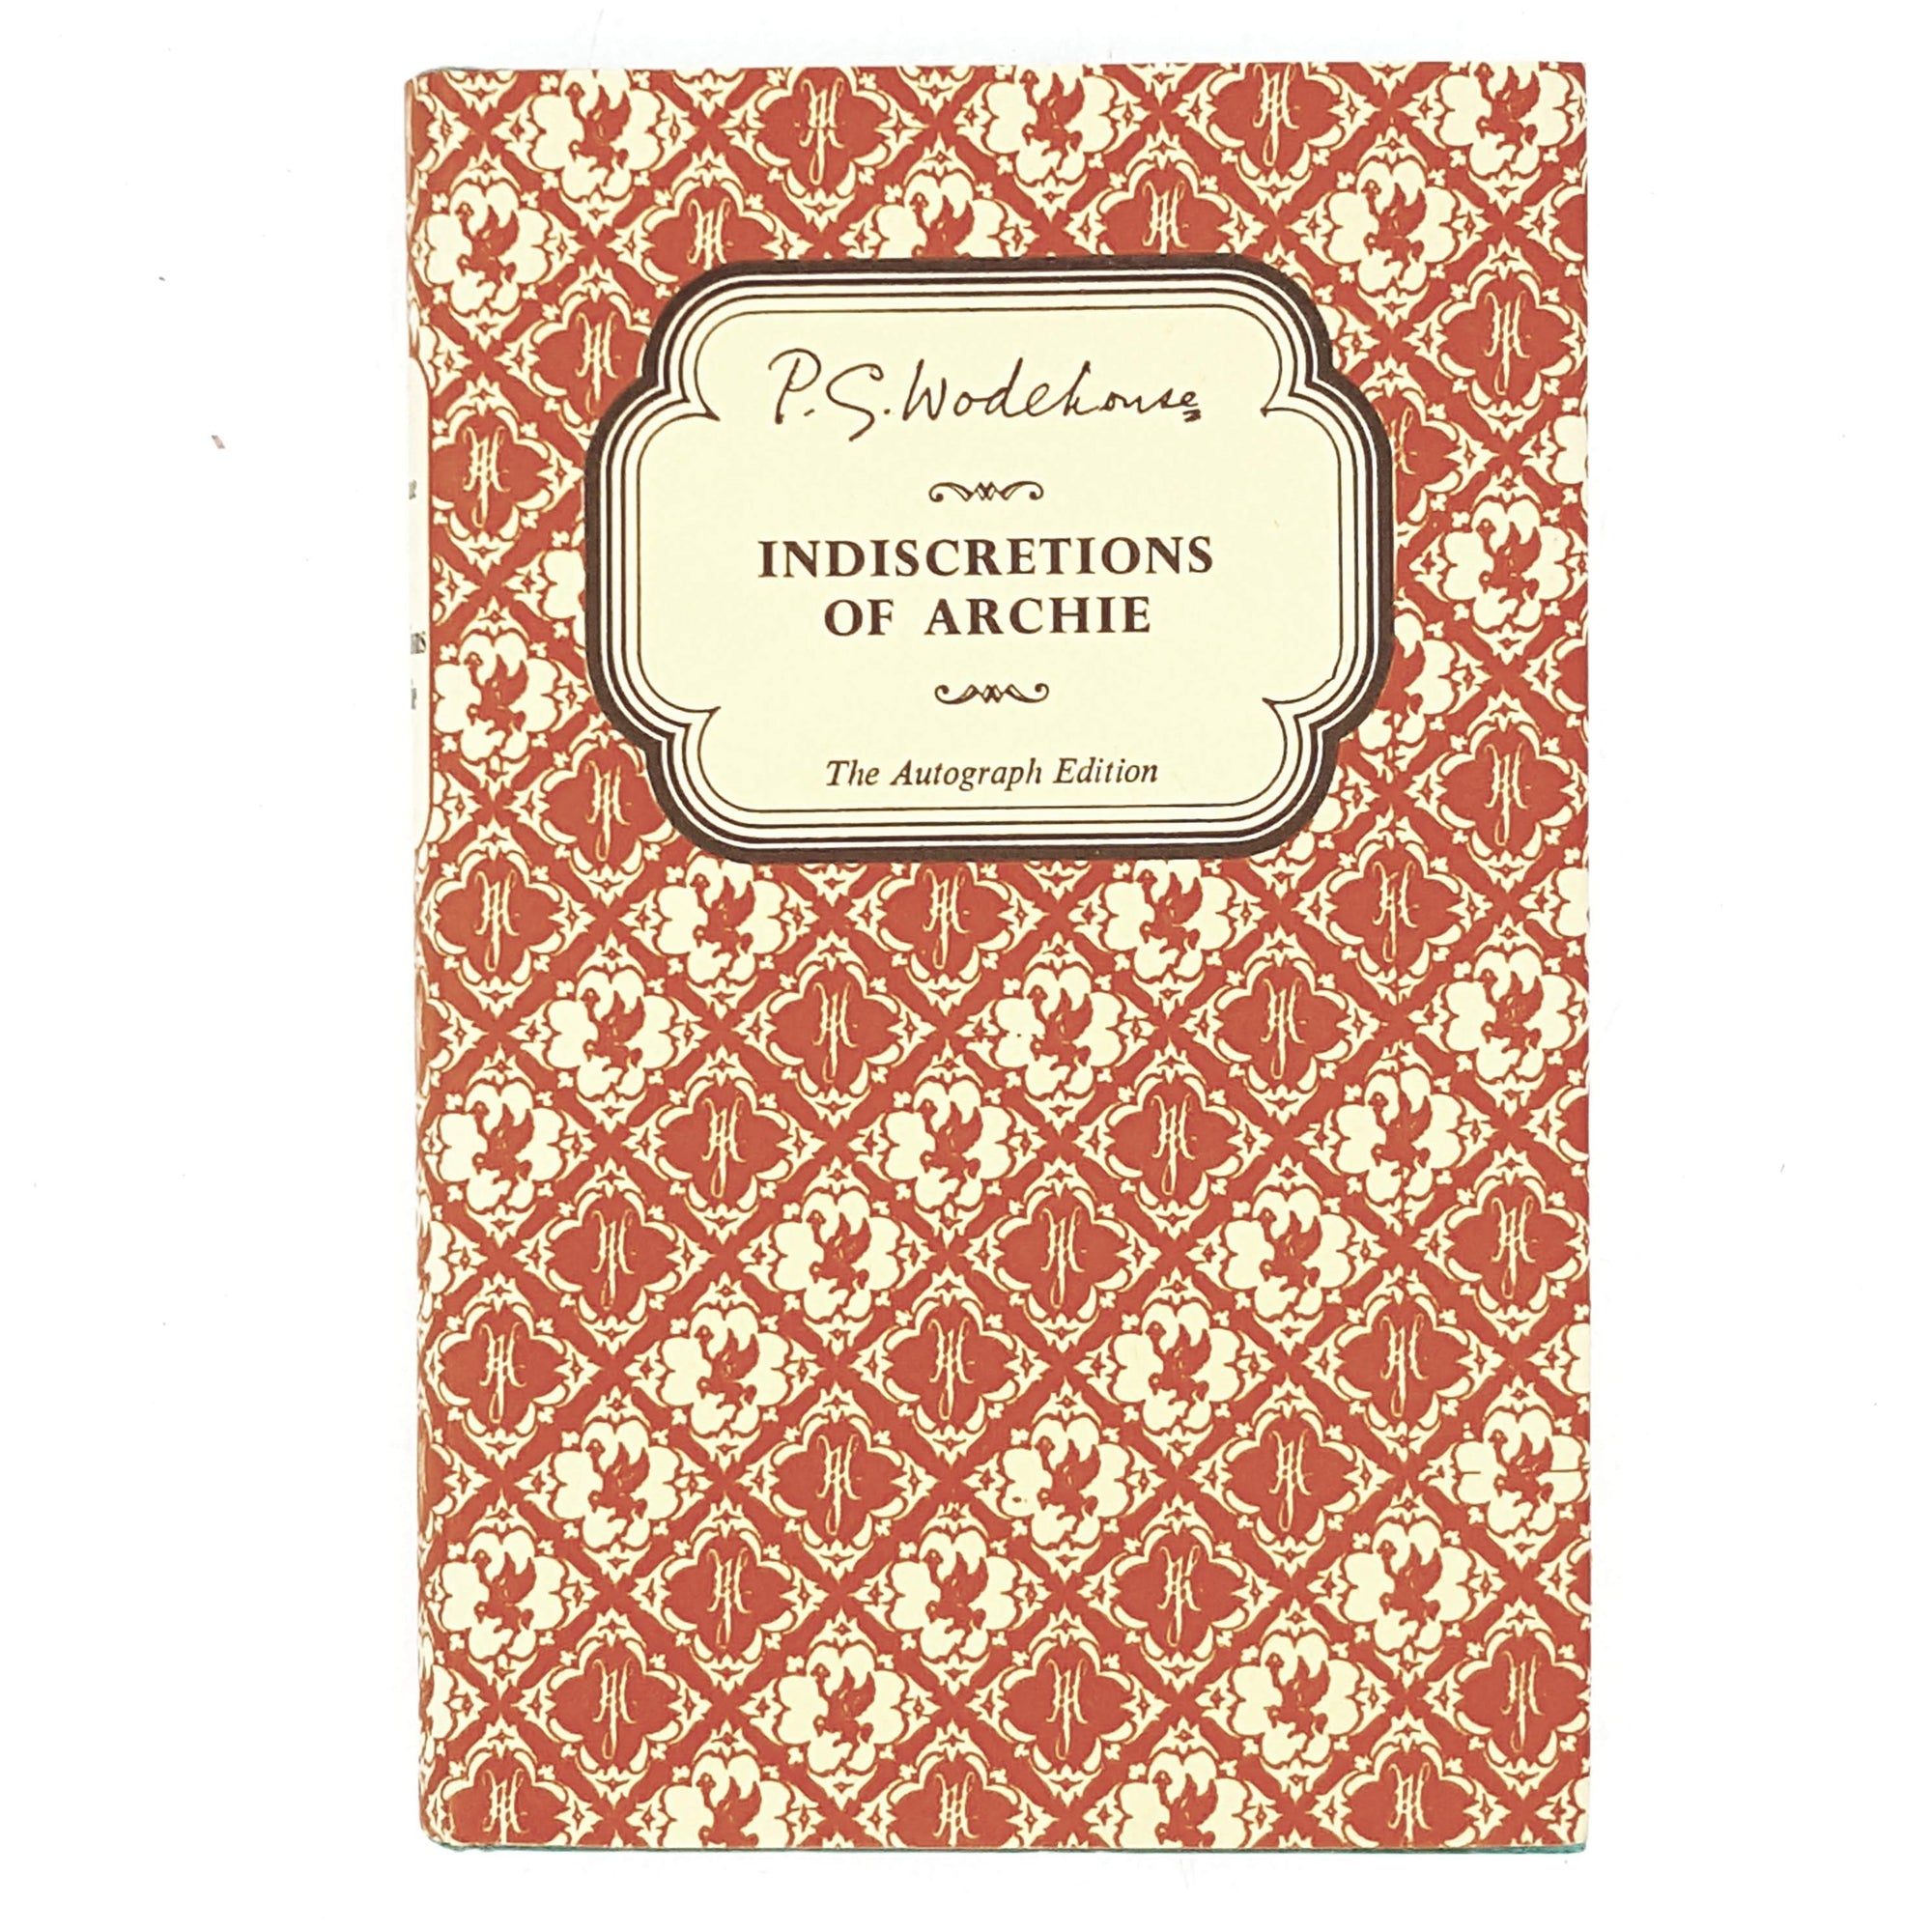 First Edition P. G. Wodehouse's Indiscretions of Archie 1965